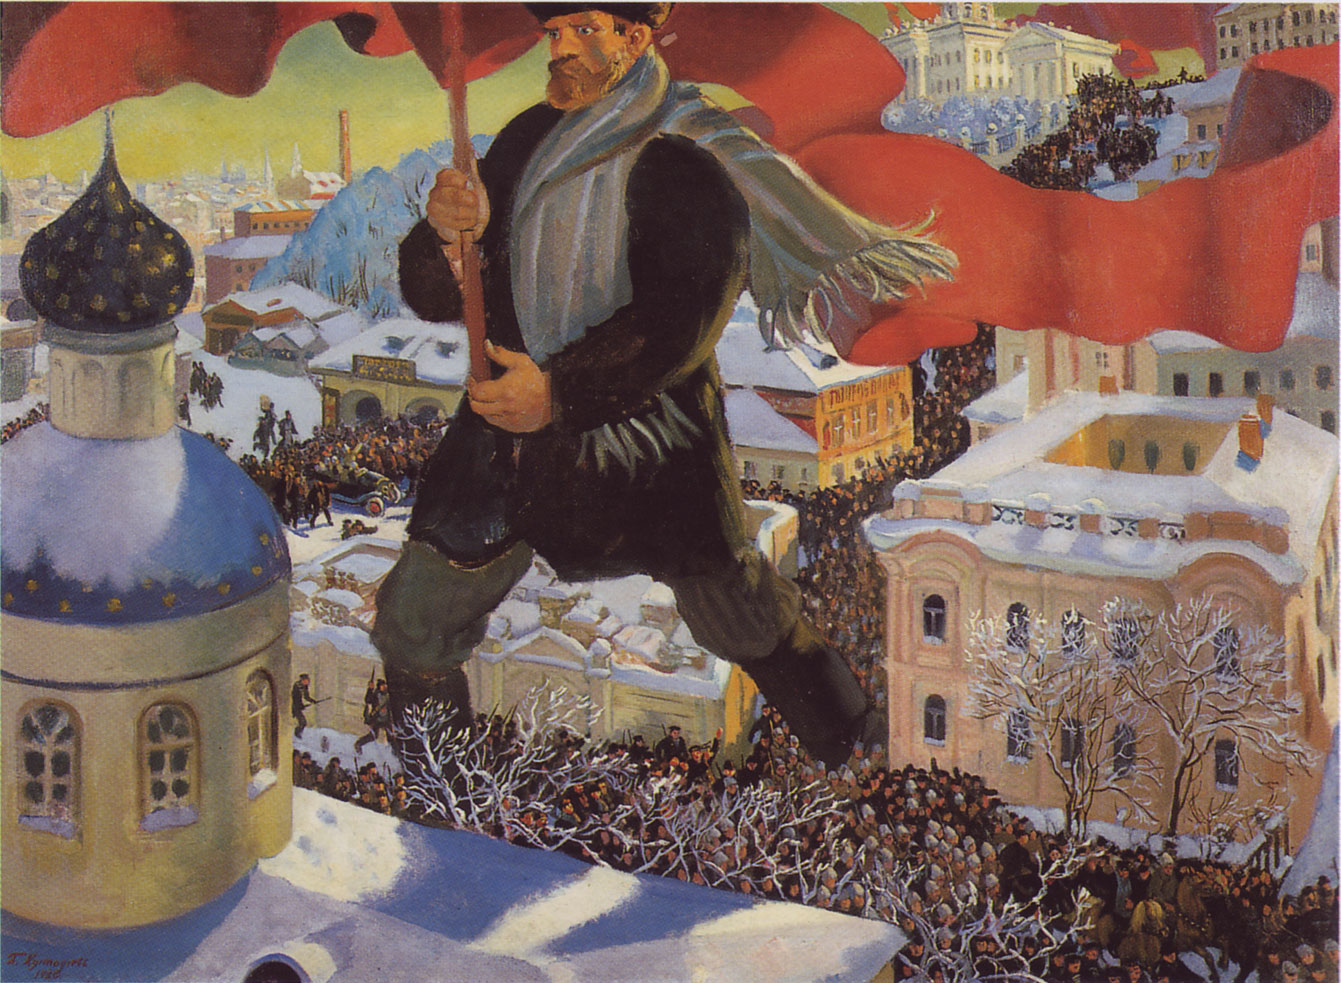 The Bolshevik  by Boris Kustodiev. 1920.